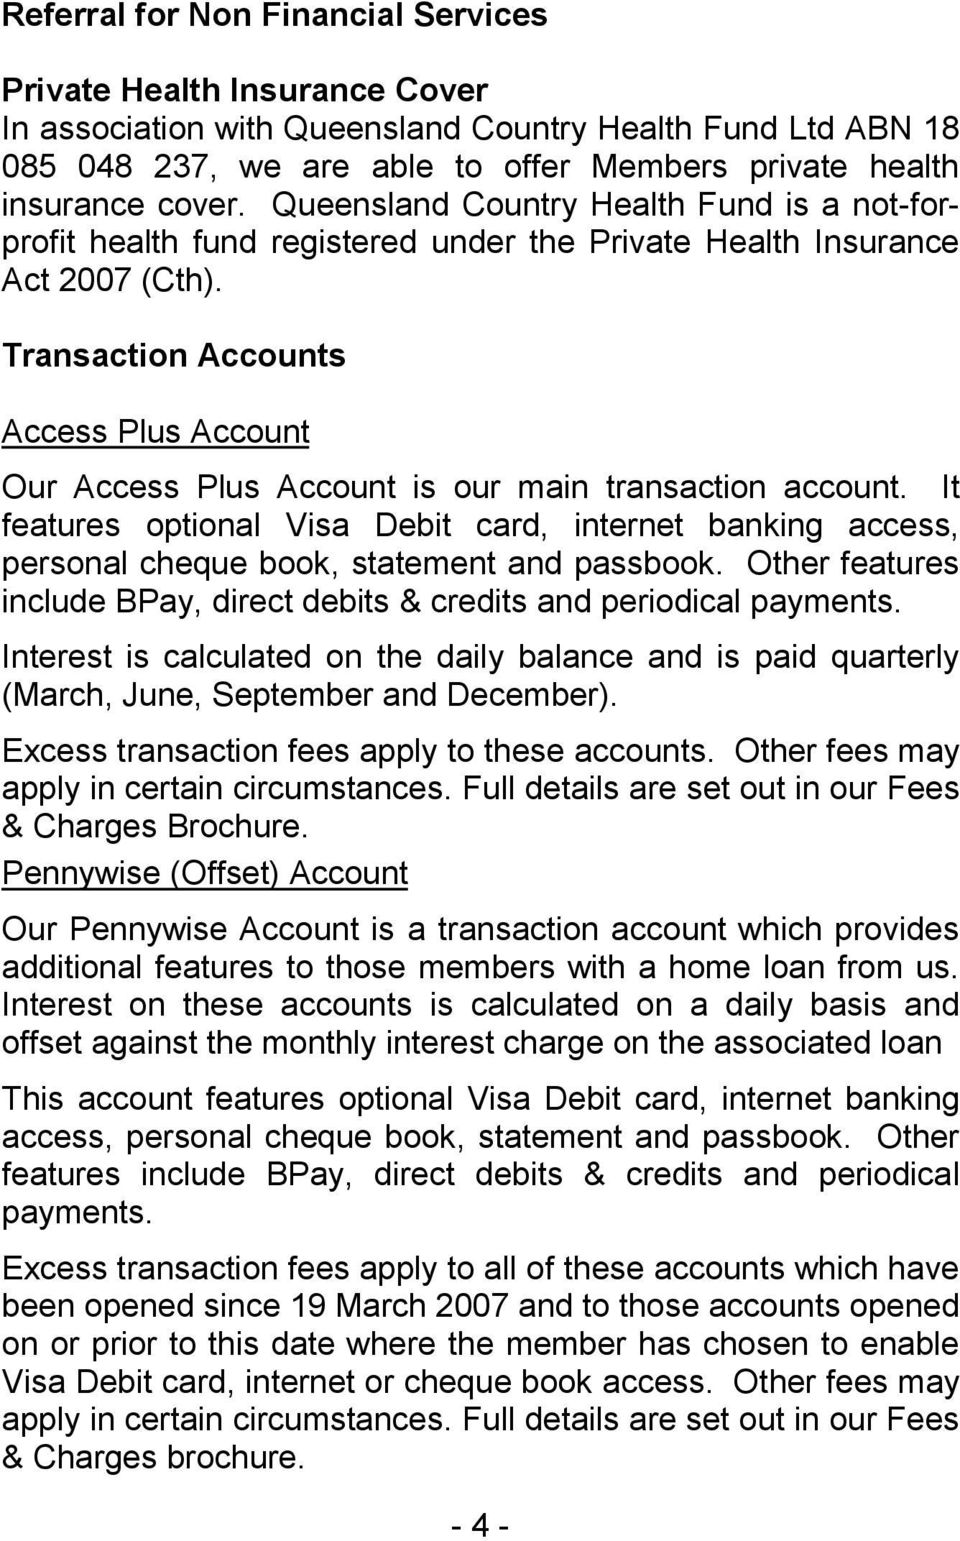 Transaction Accounts Access Plus Account Our Access Plus Account is our main transaction account.